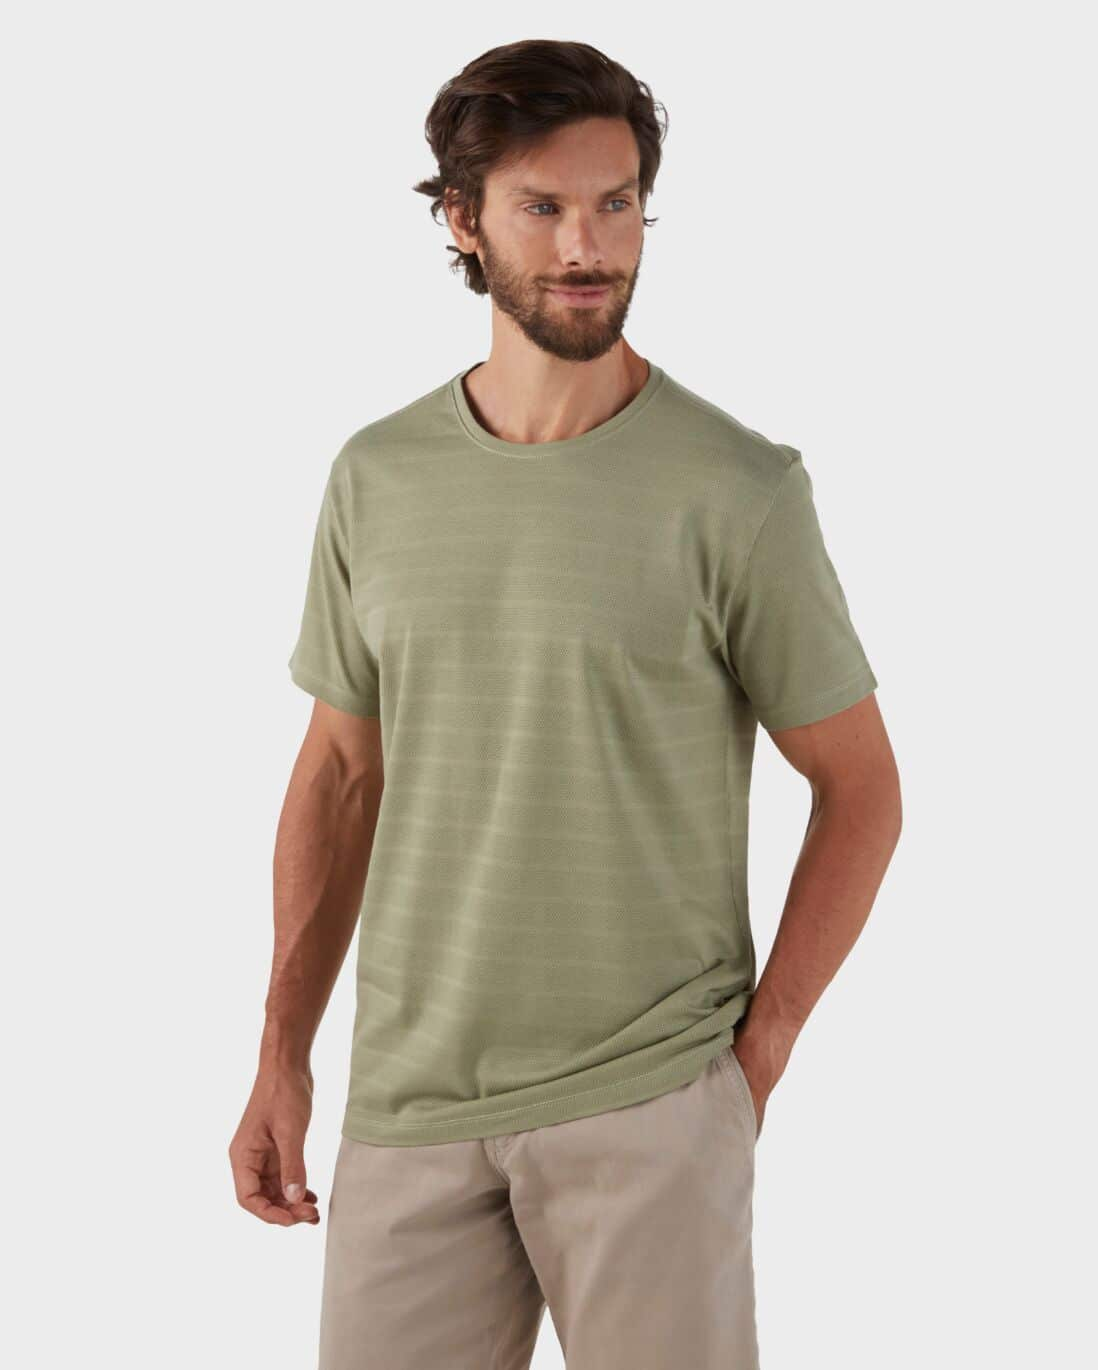 Camiseta Regular Fit Básica - Verde Musgo